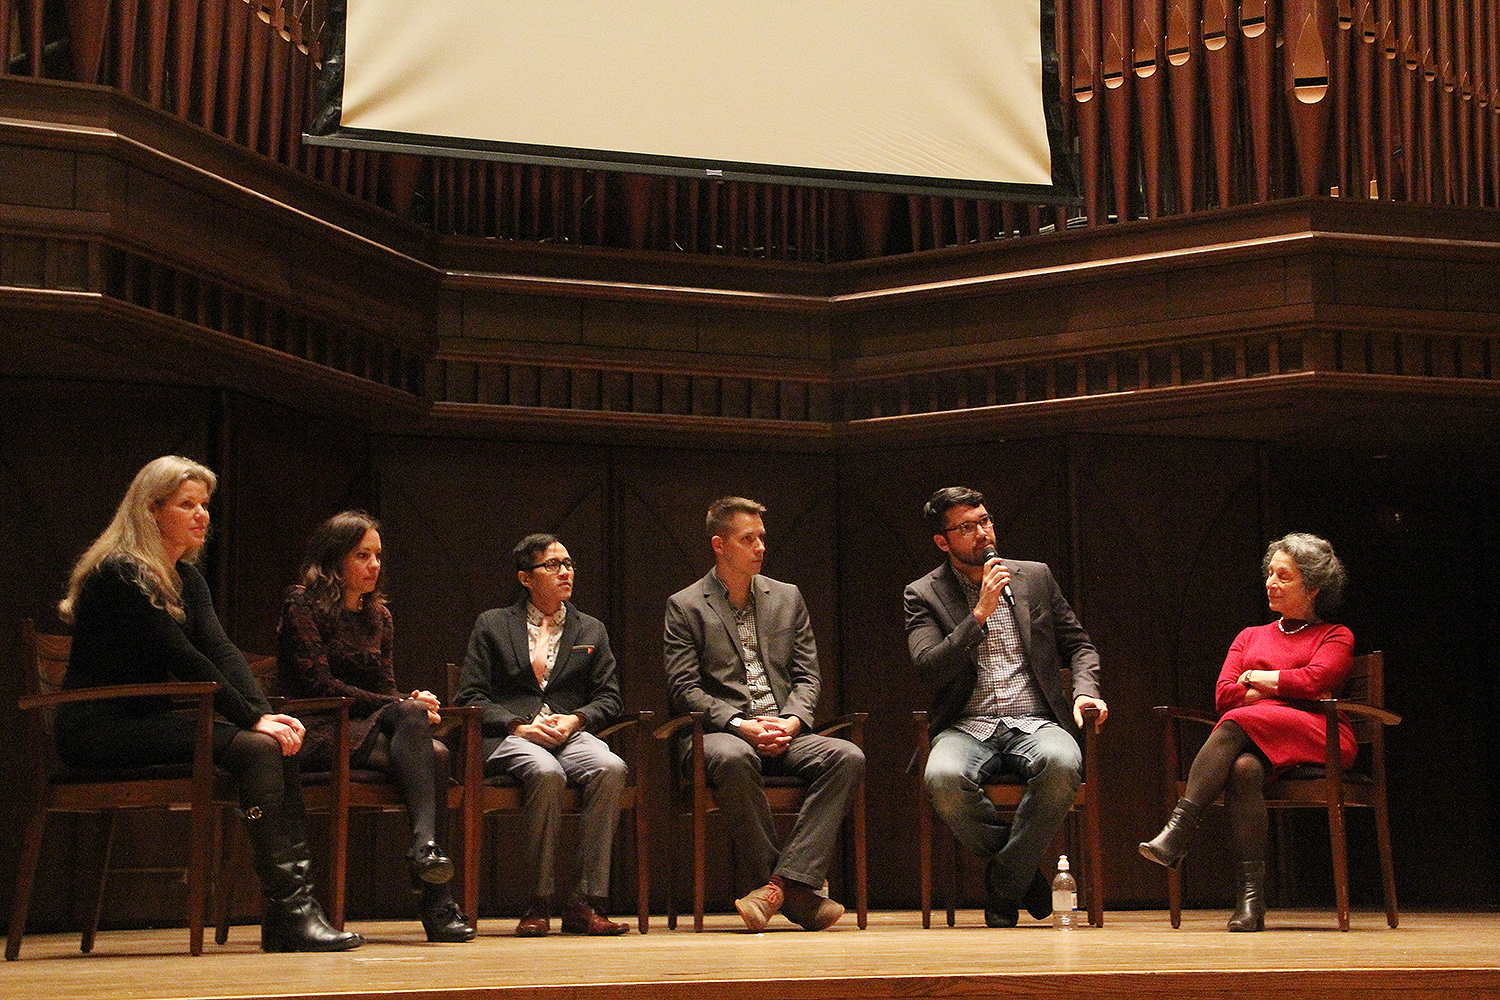 During Wesleyan Thinks Big, six faculty delivered 10-minute inspirational lectures on topics they are personally passionate about. The student-run event took place Dec. 10 in Memorial Chapel.